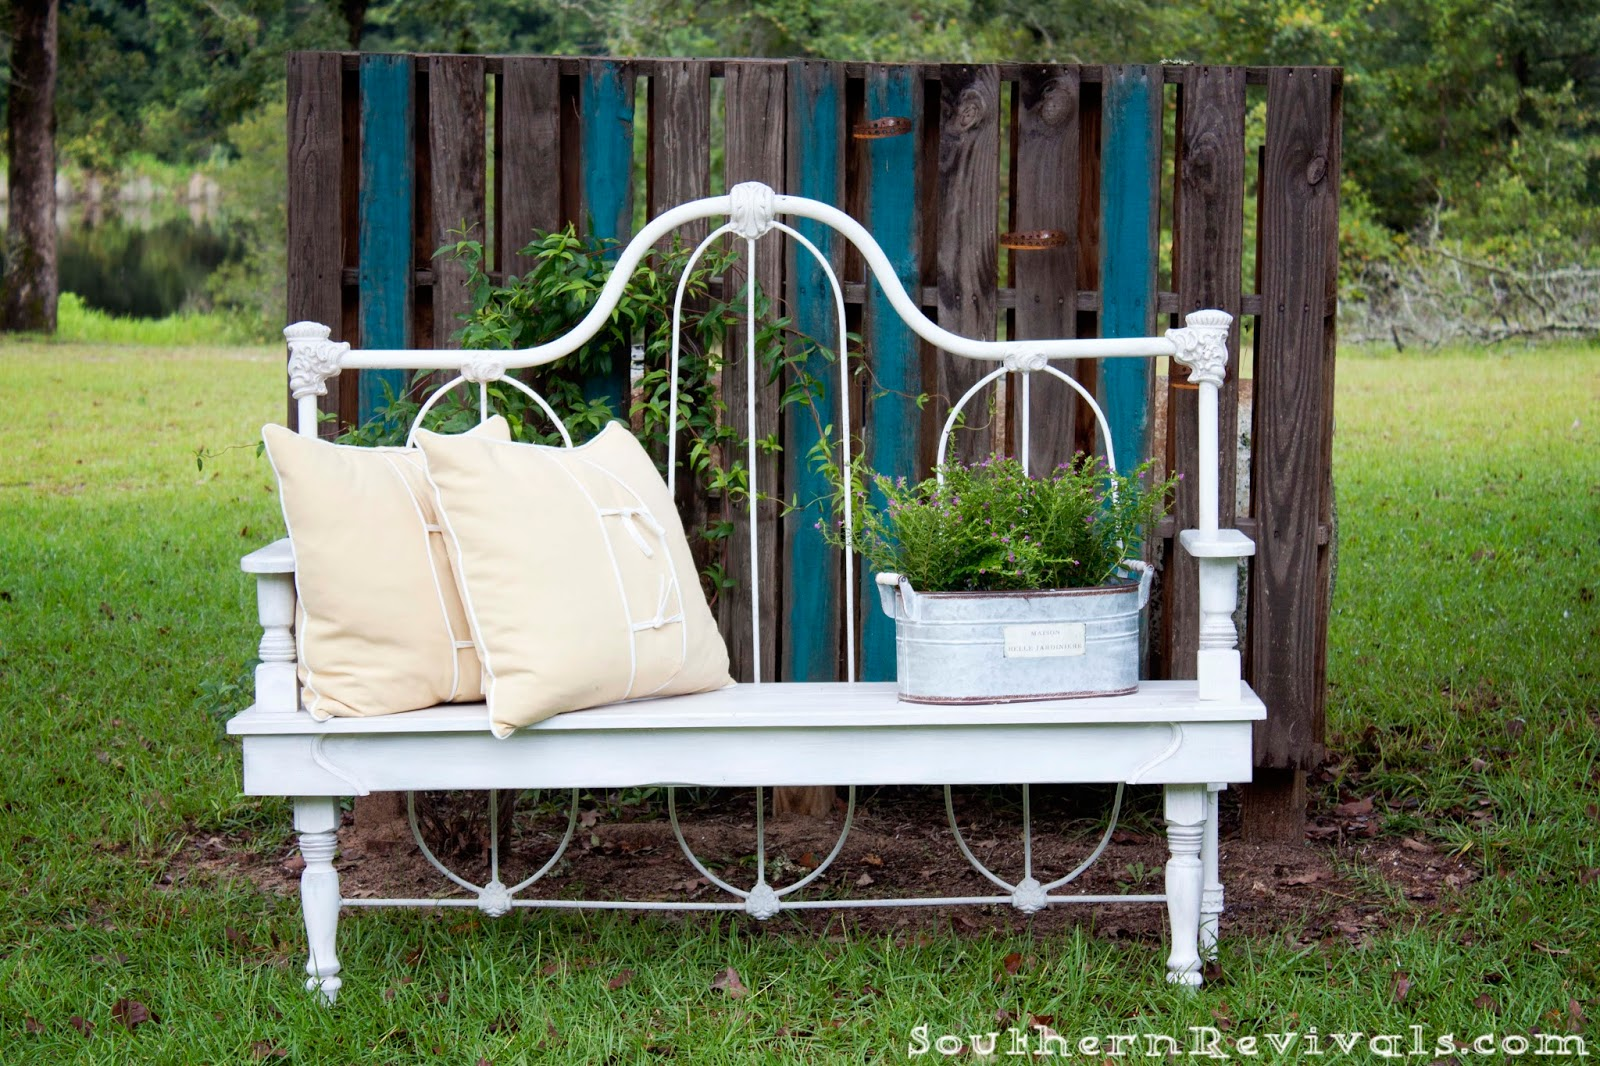 Awe Inspiring Diy Repurposed Metal Headboard Bench Southern Revivals Short Links Chair Design For Home Short Linksinfo